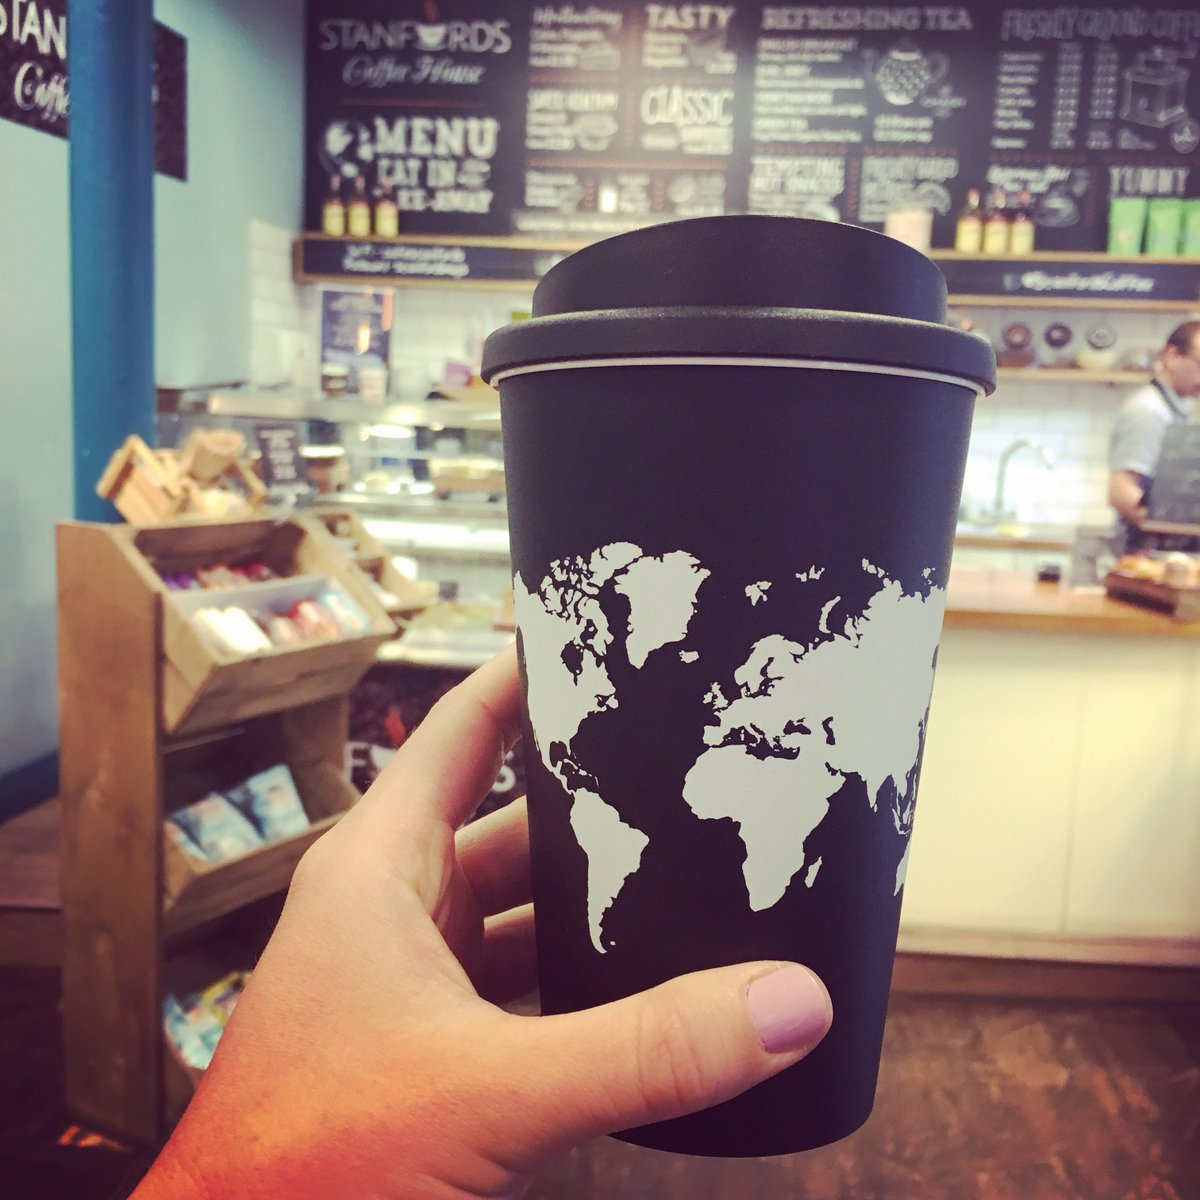 Stanfords on twitter for every re usable stanfords world map for every re usable stanfords world map travel mug sold we donate 50p to explorersagainstextinction realafrica gumiabroncs Choice Image